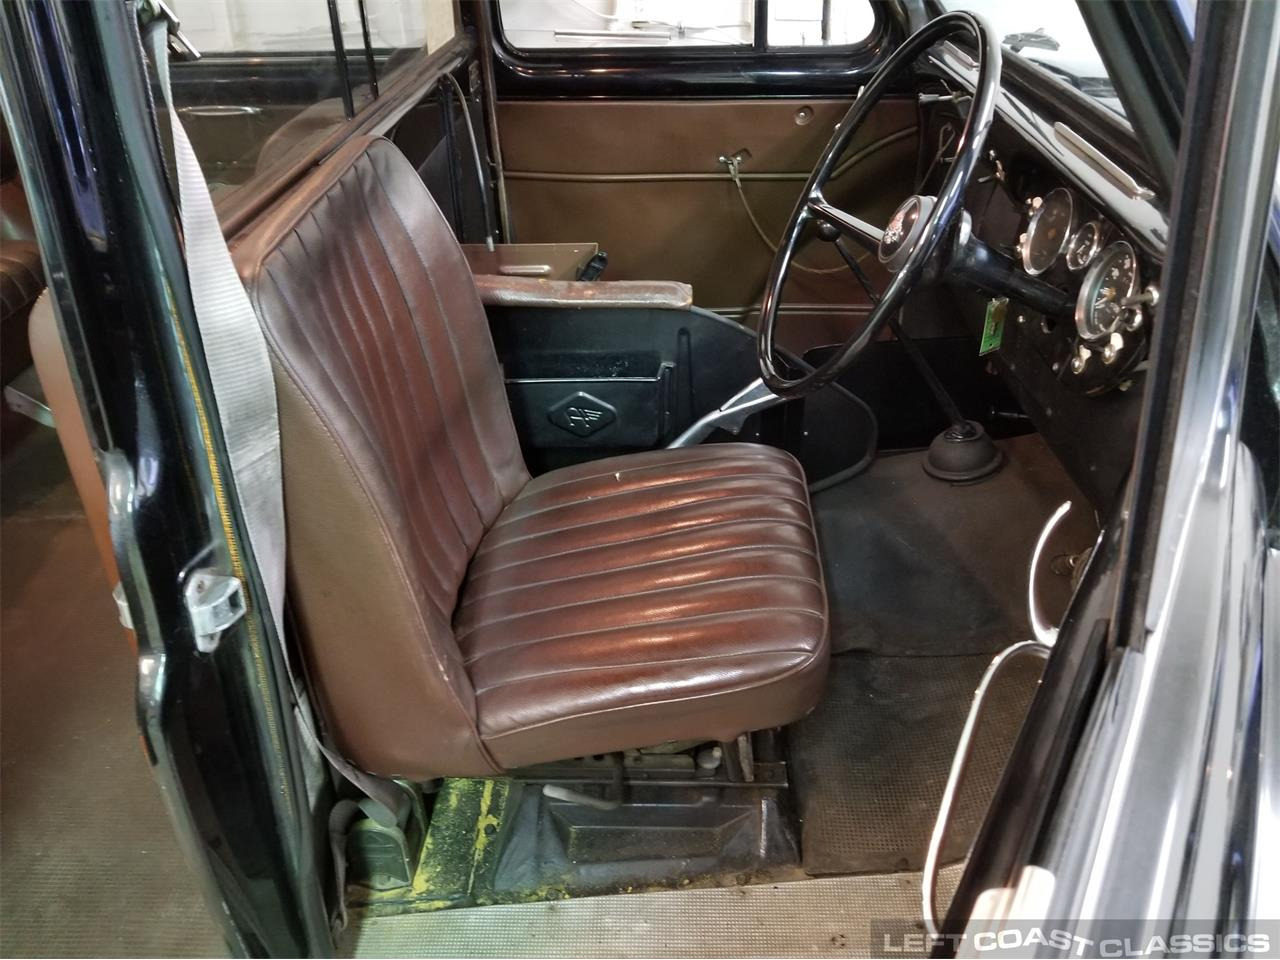 Large Picture of 1967 Austin FX4 Taxi Cab Offered by Left Coast Classics - PKBX